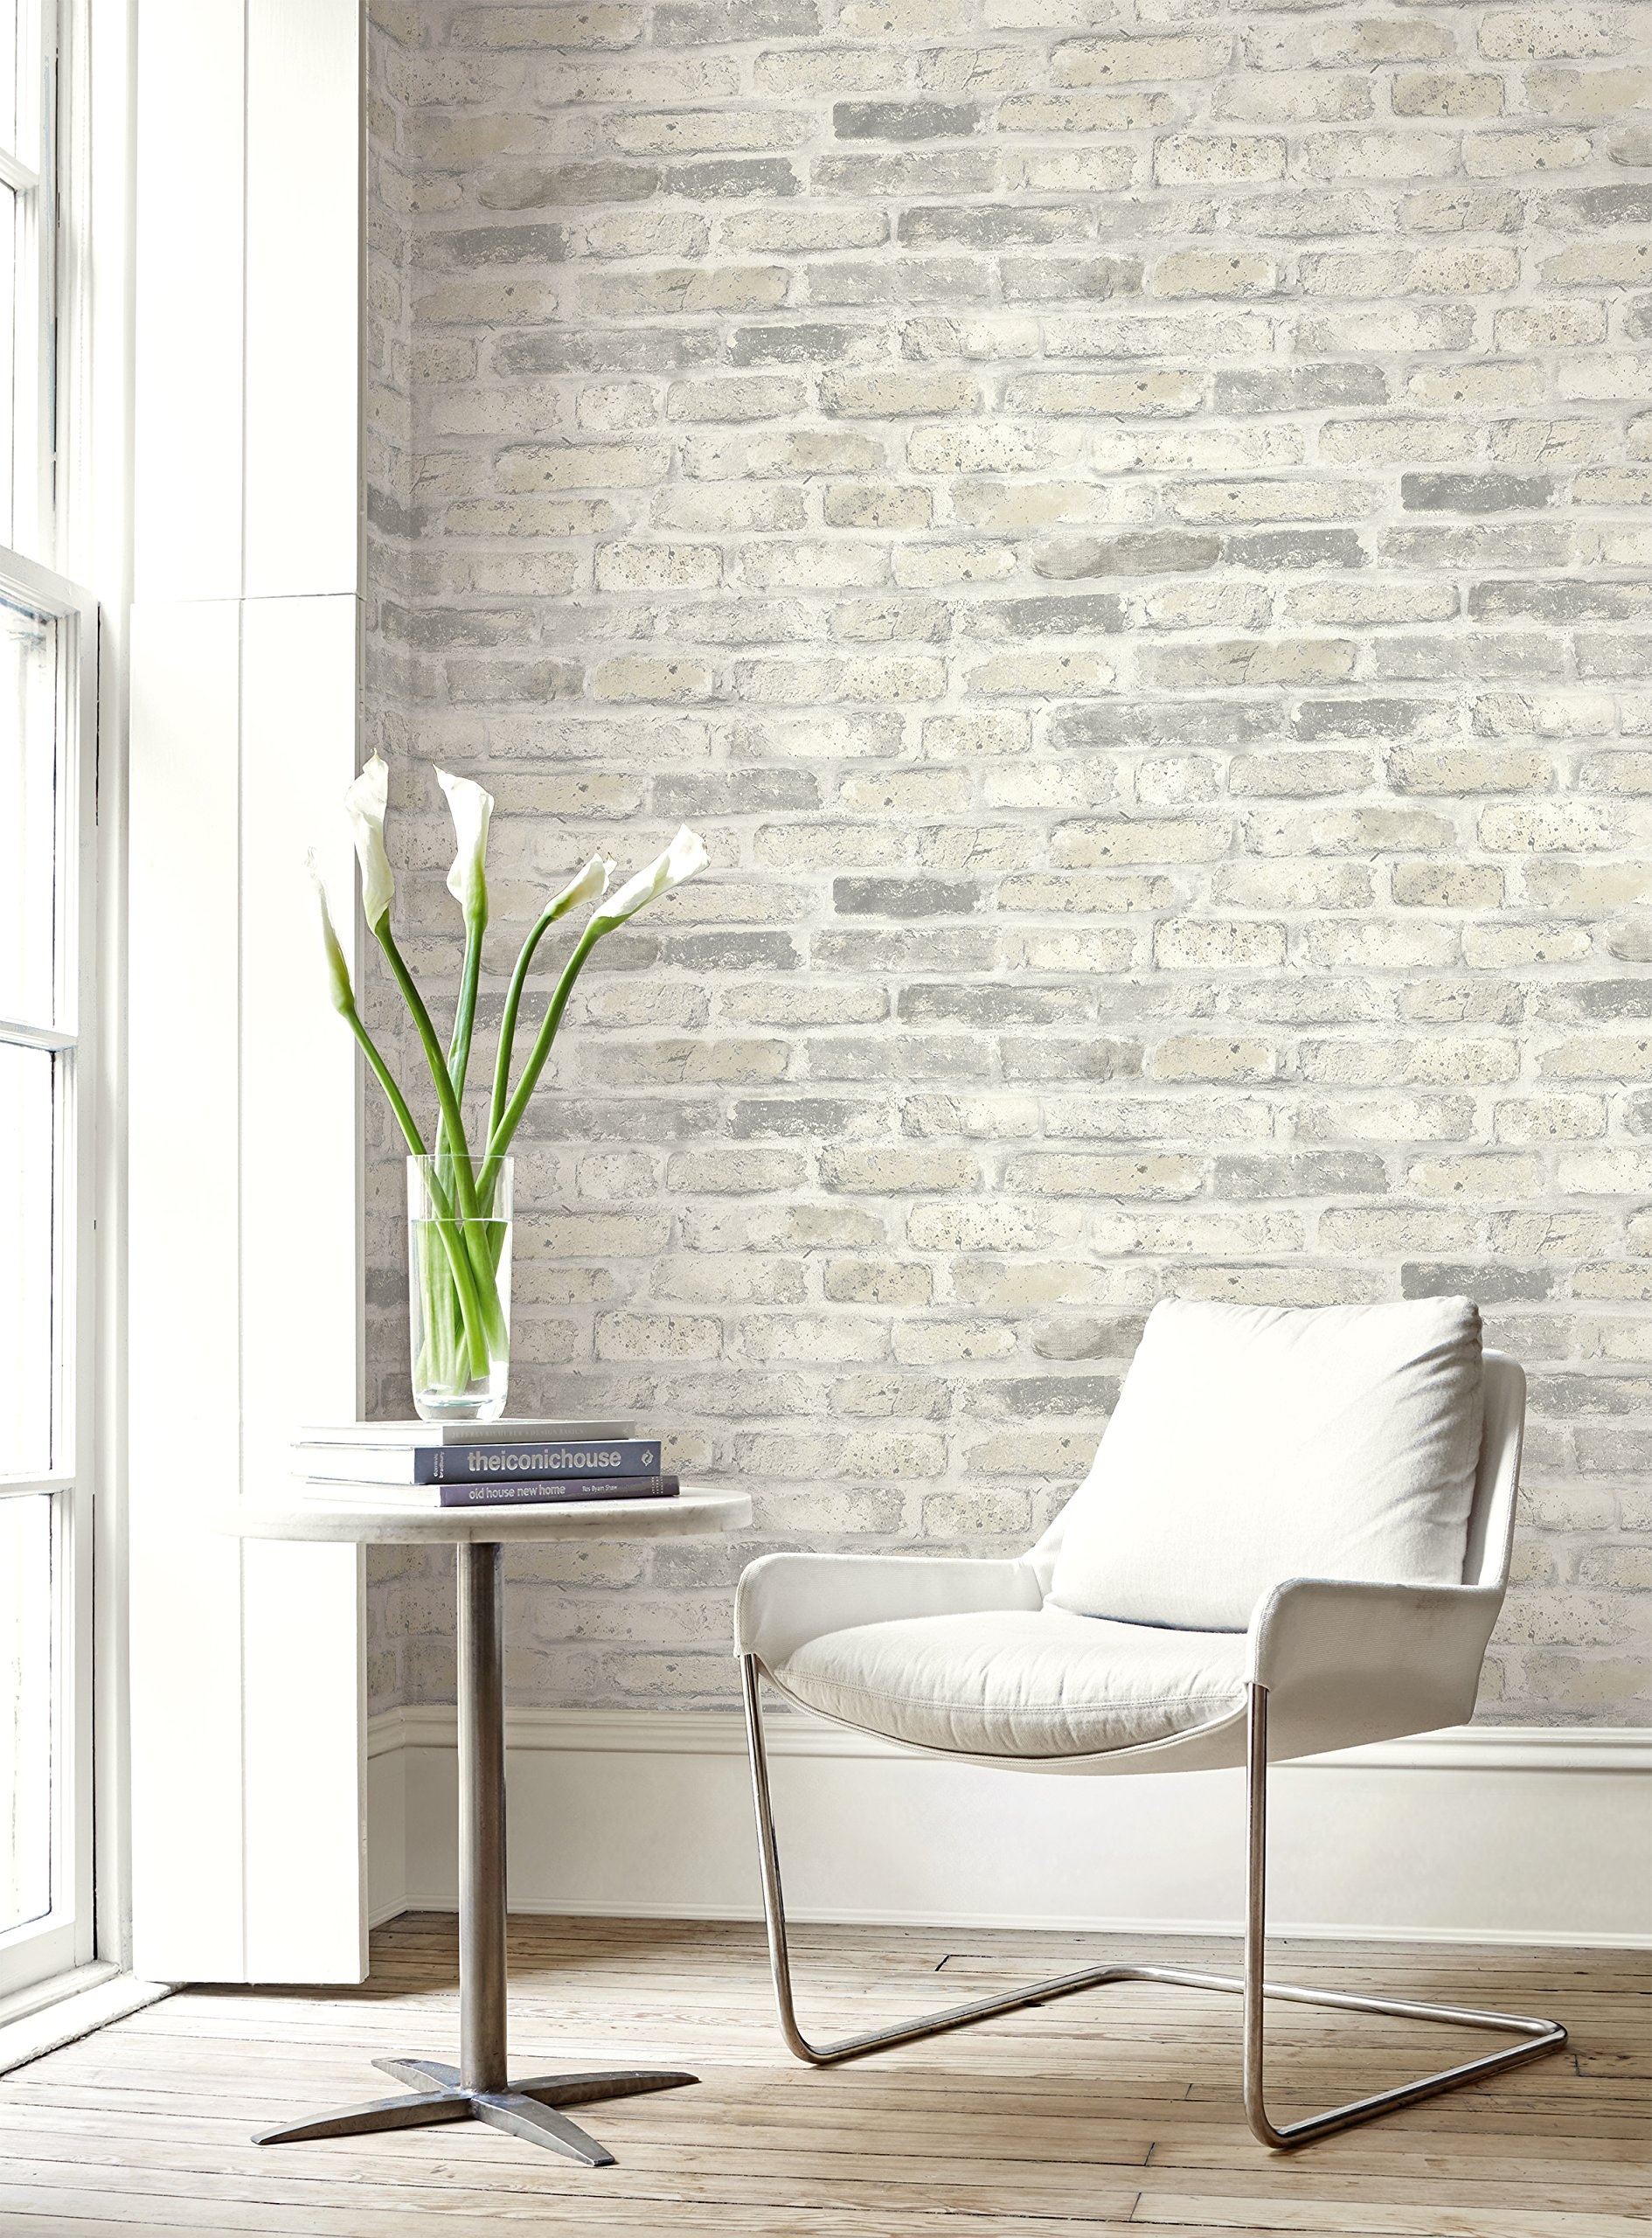 Faux Rustic Brick Wallpaper (Gray & White) by Wallquest